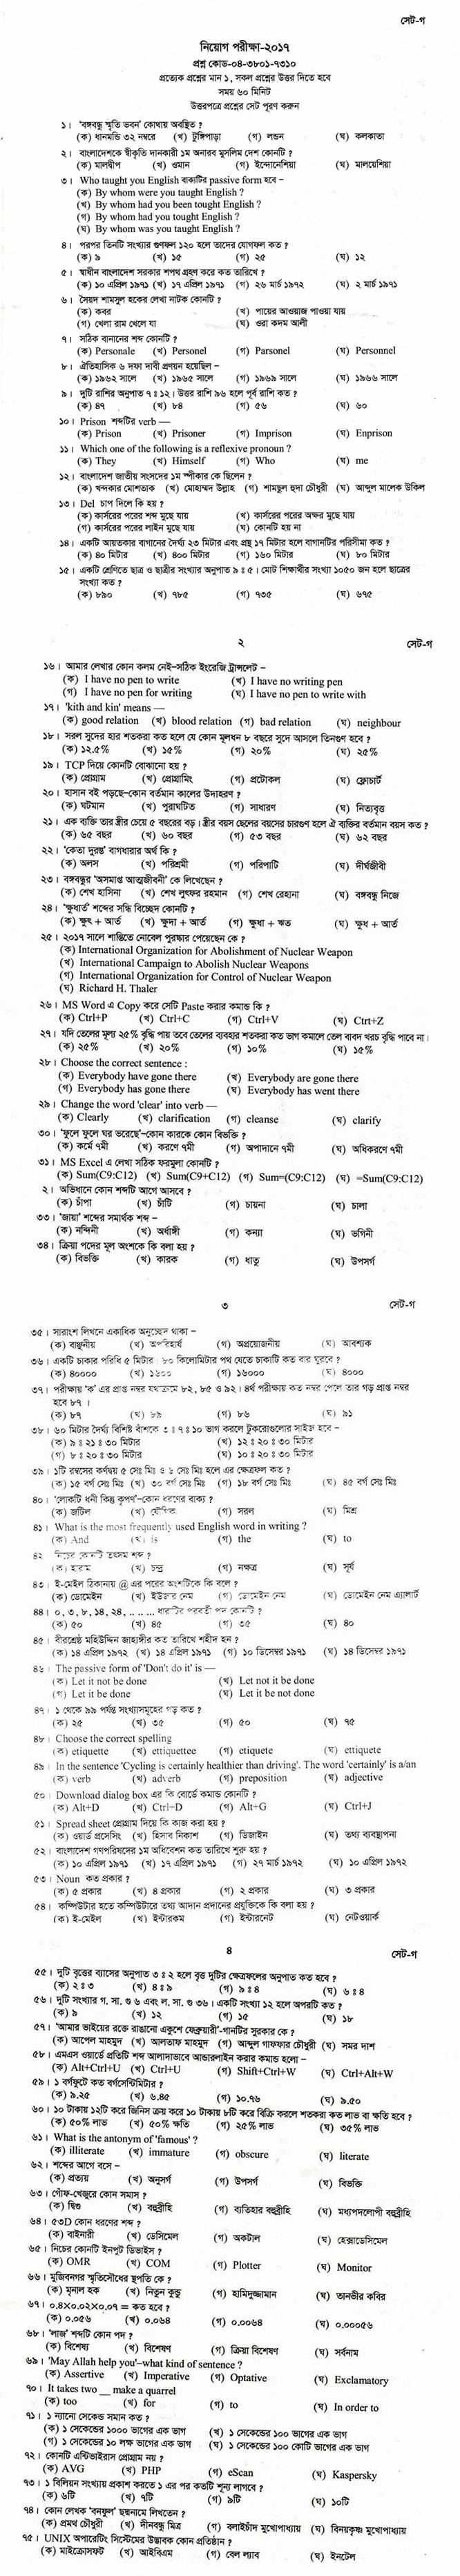 Ektee Bari Ektee Khamar EBEK Exam Question Solution 2017